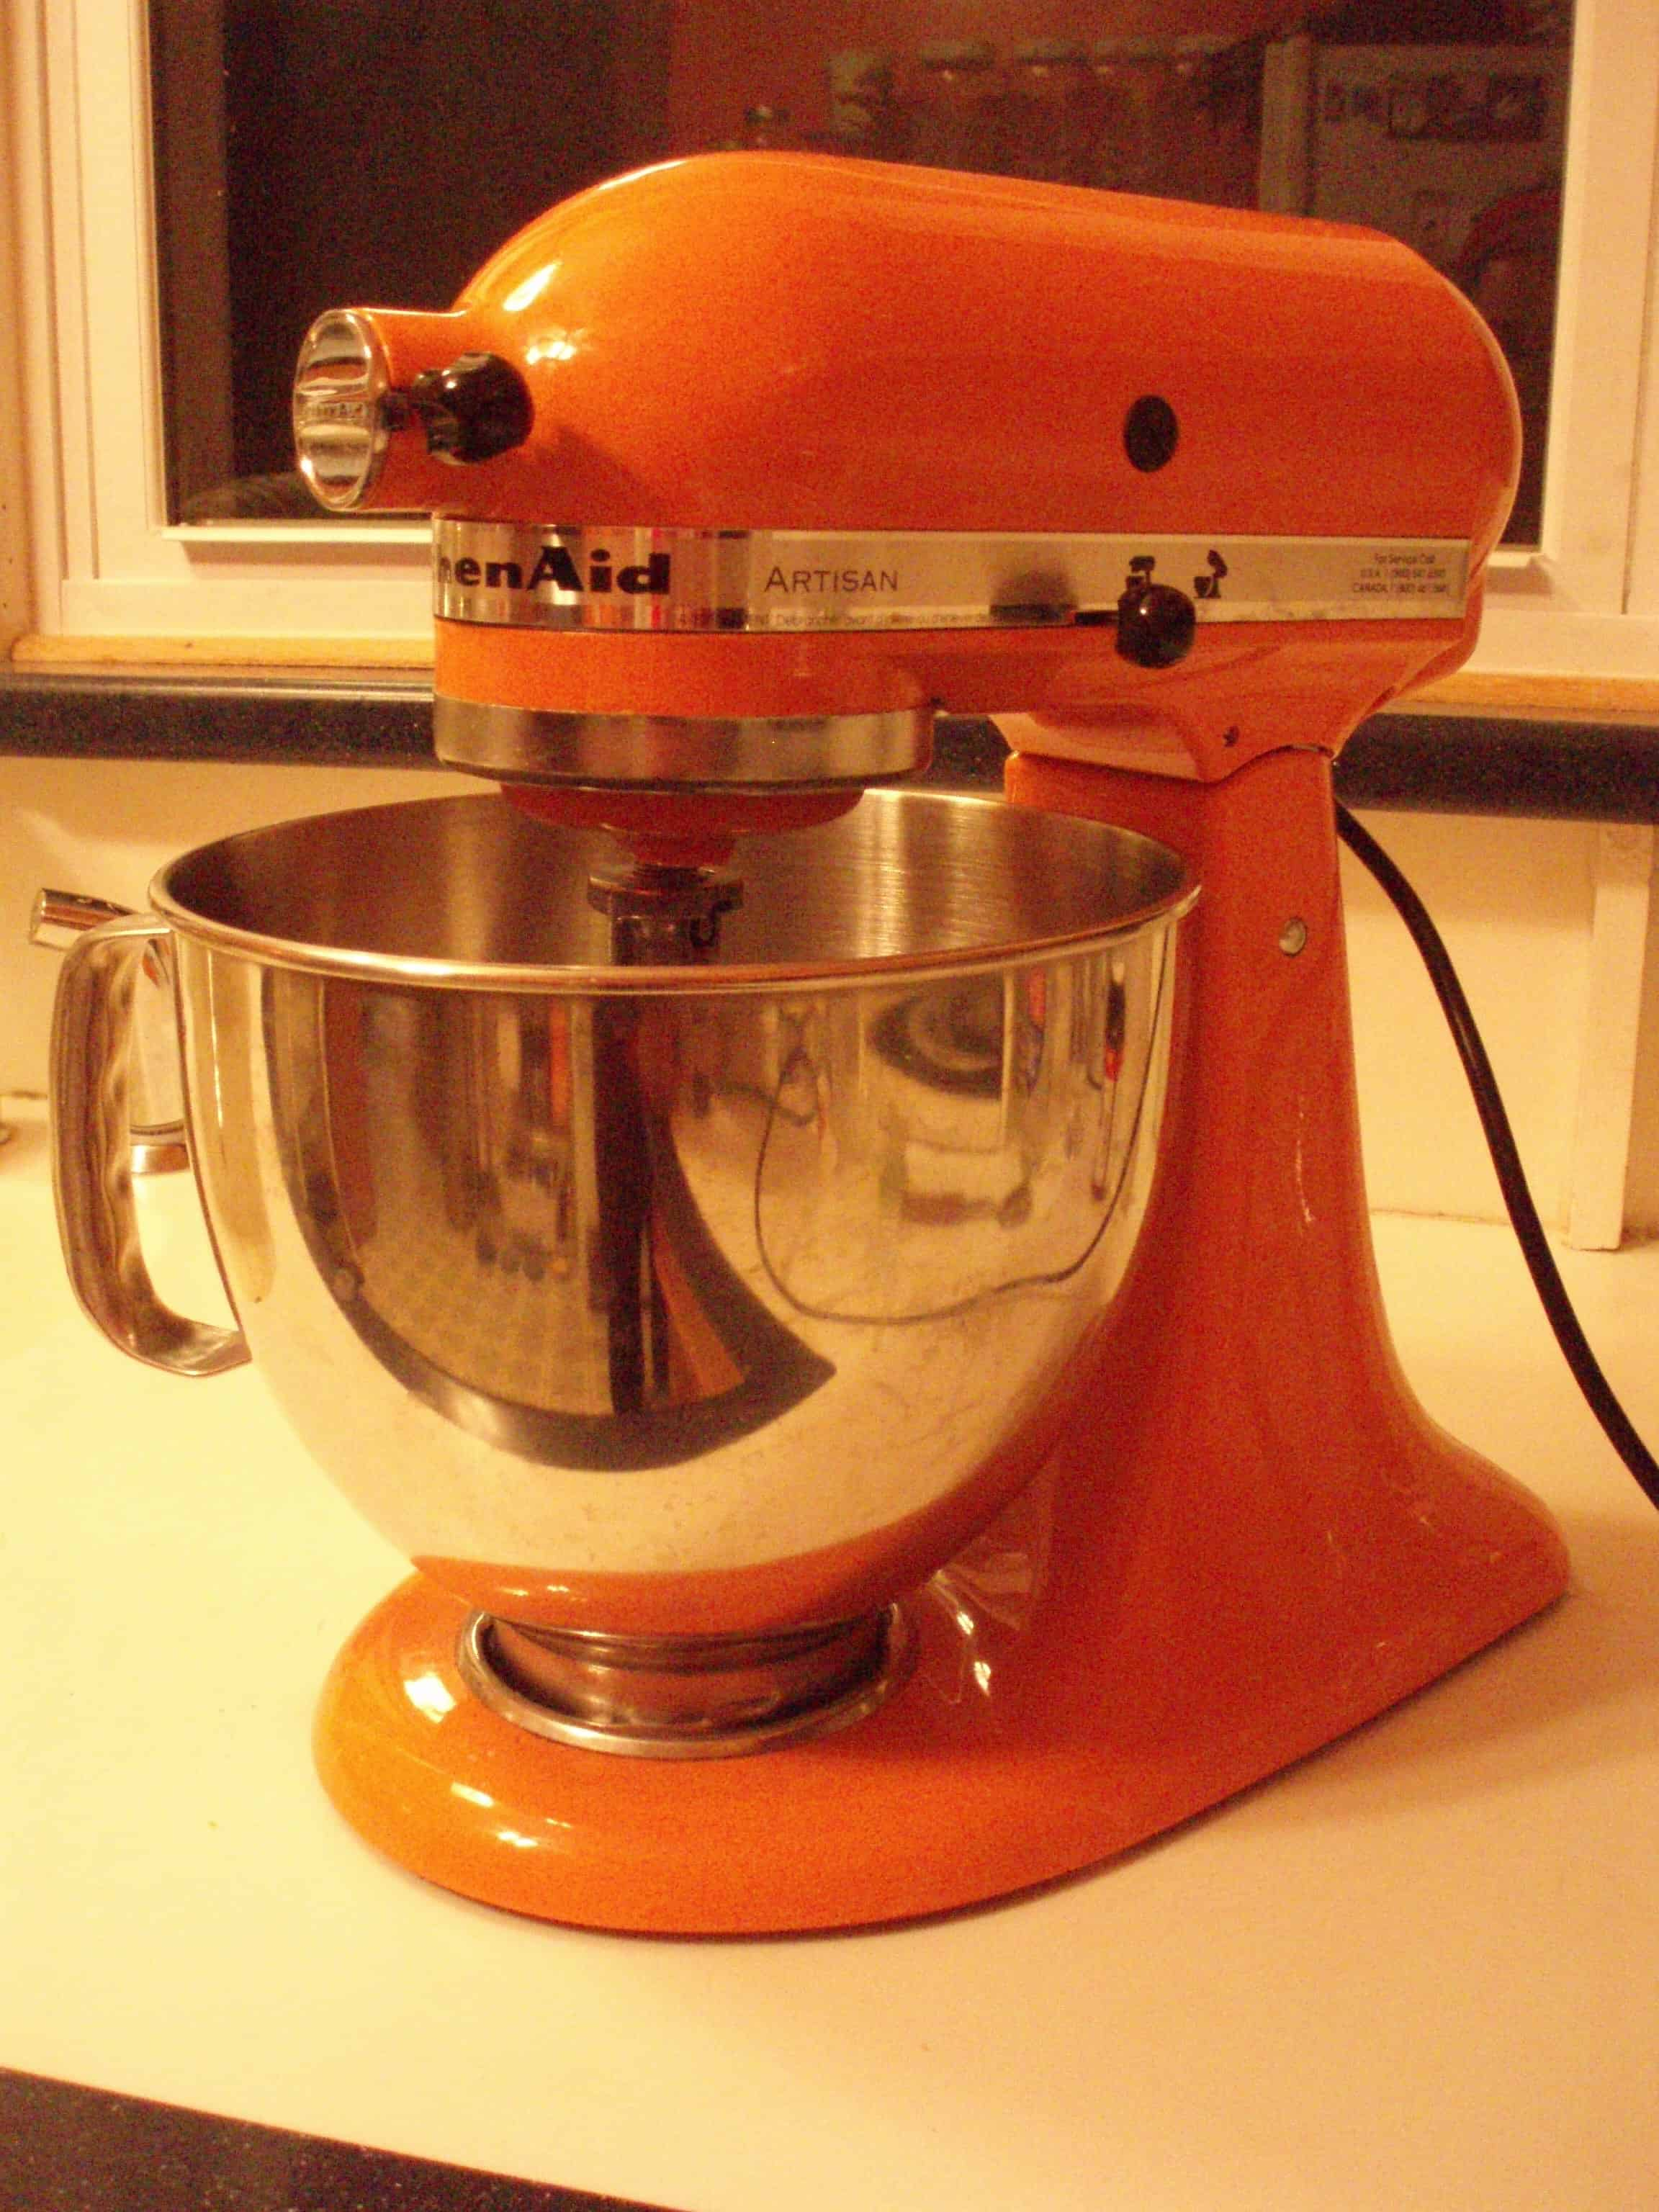 Ask Casey: Shelling Out for a Stand Mixer